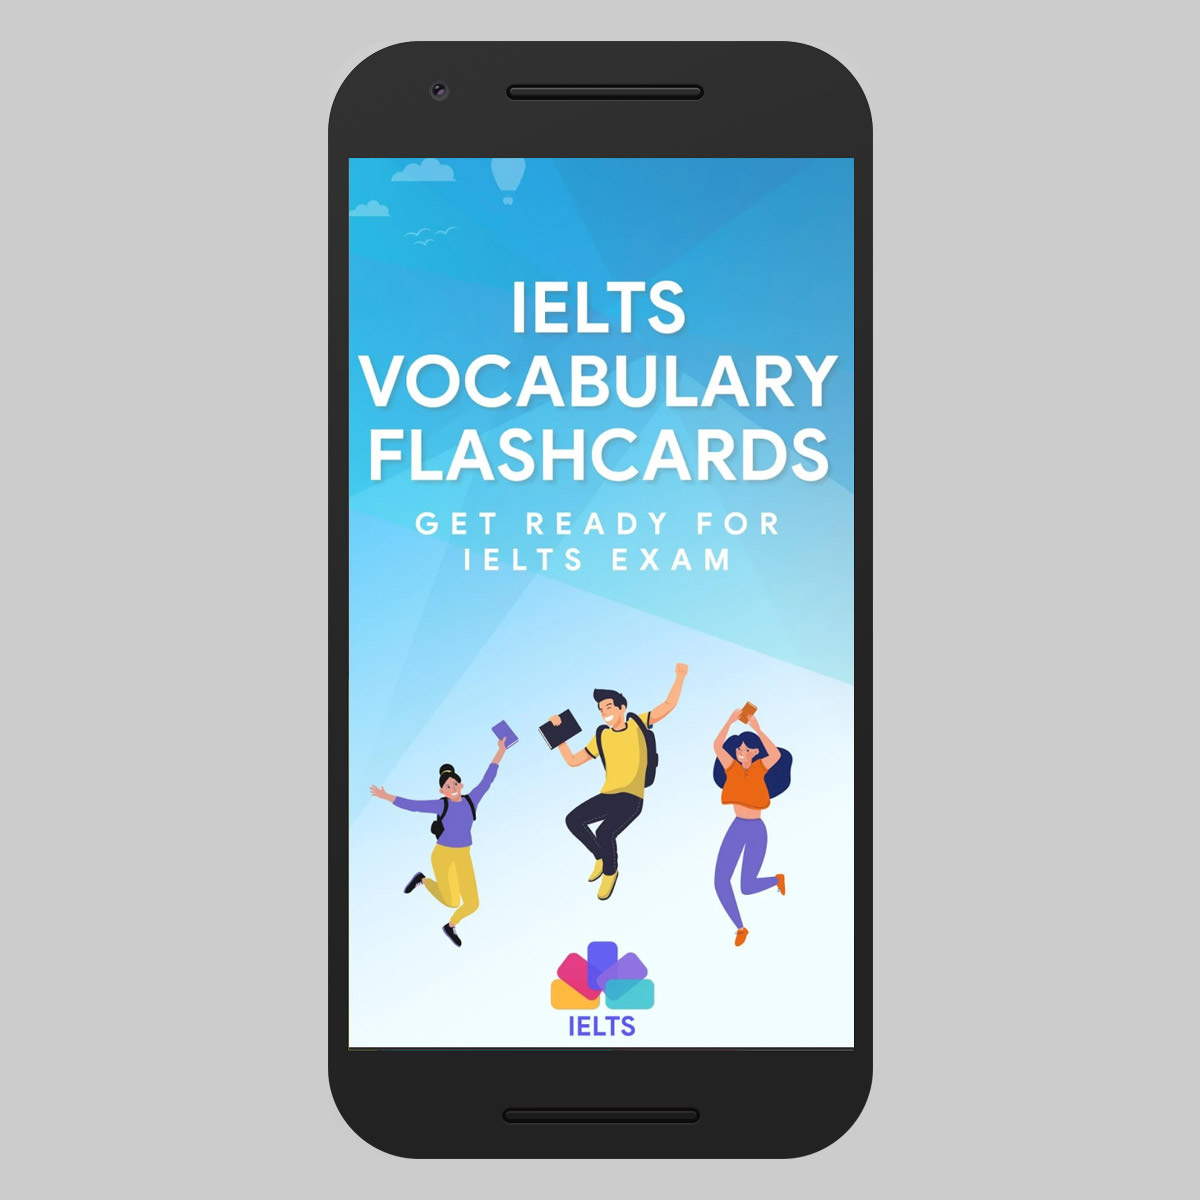 IELTS-Vocabulary-Flashcards